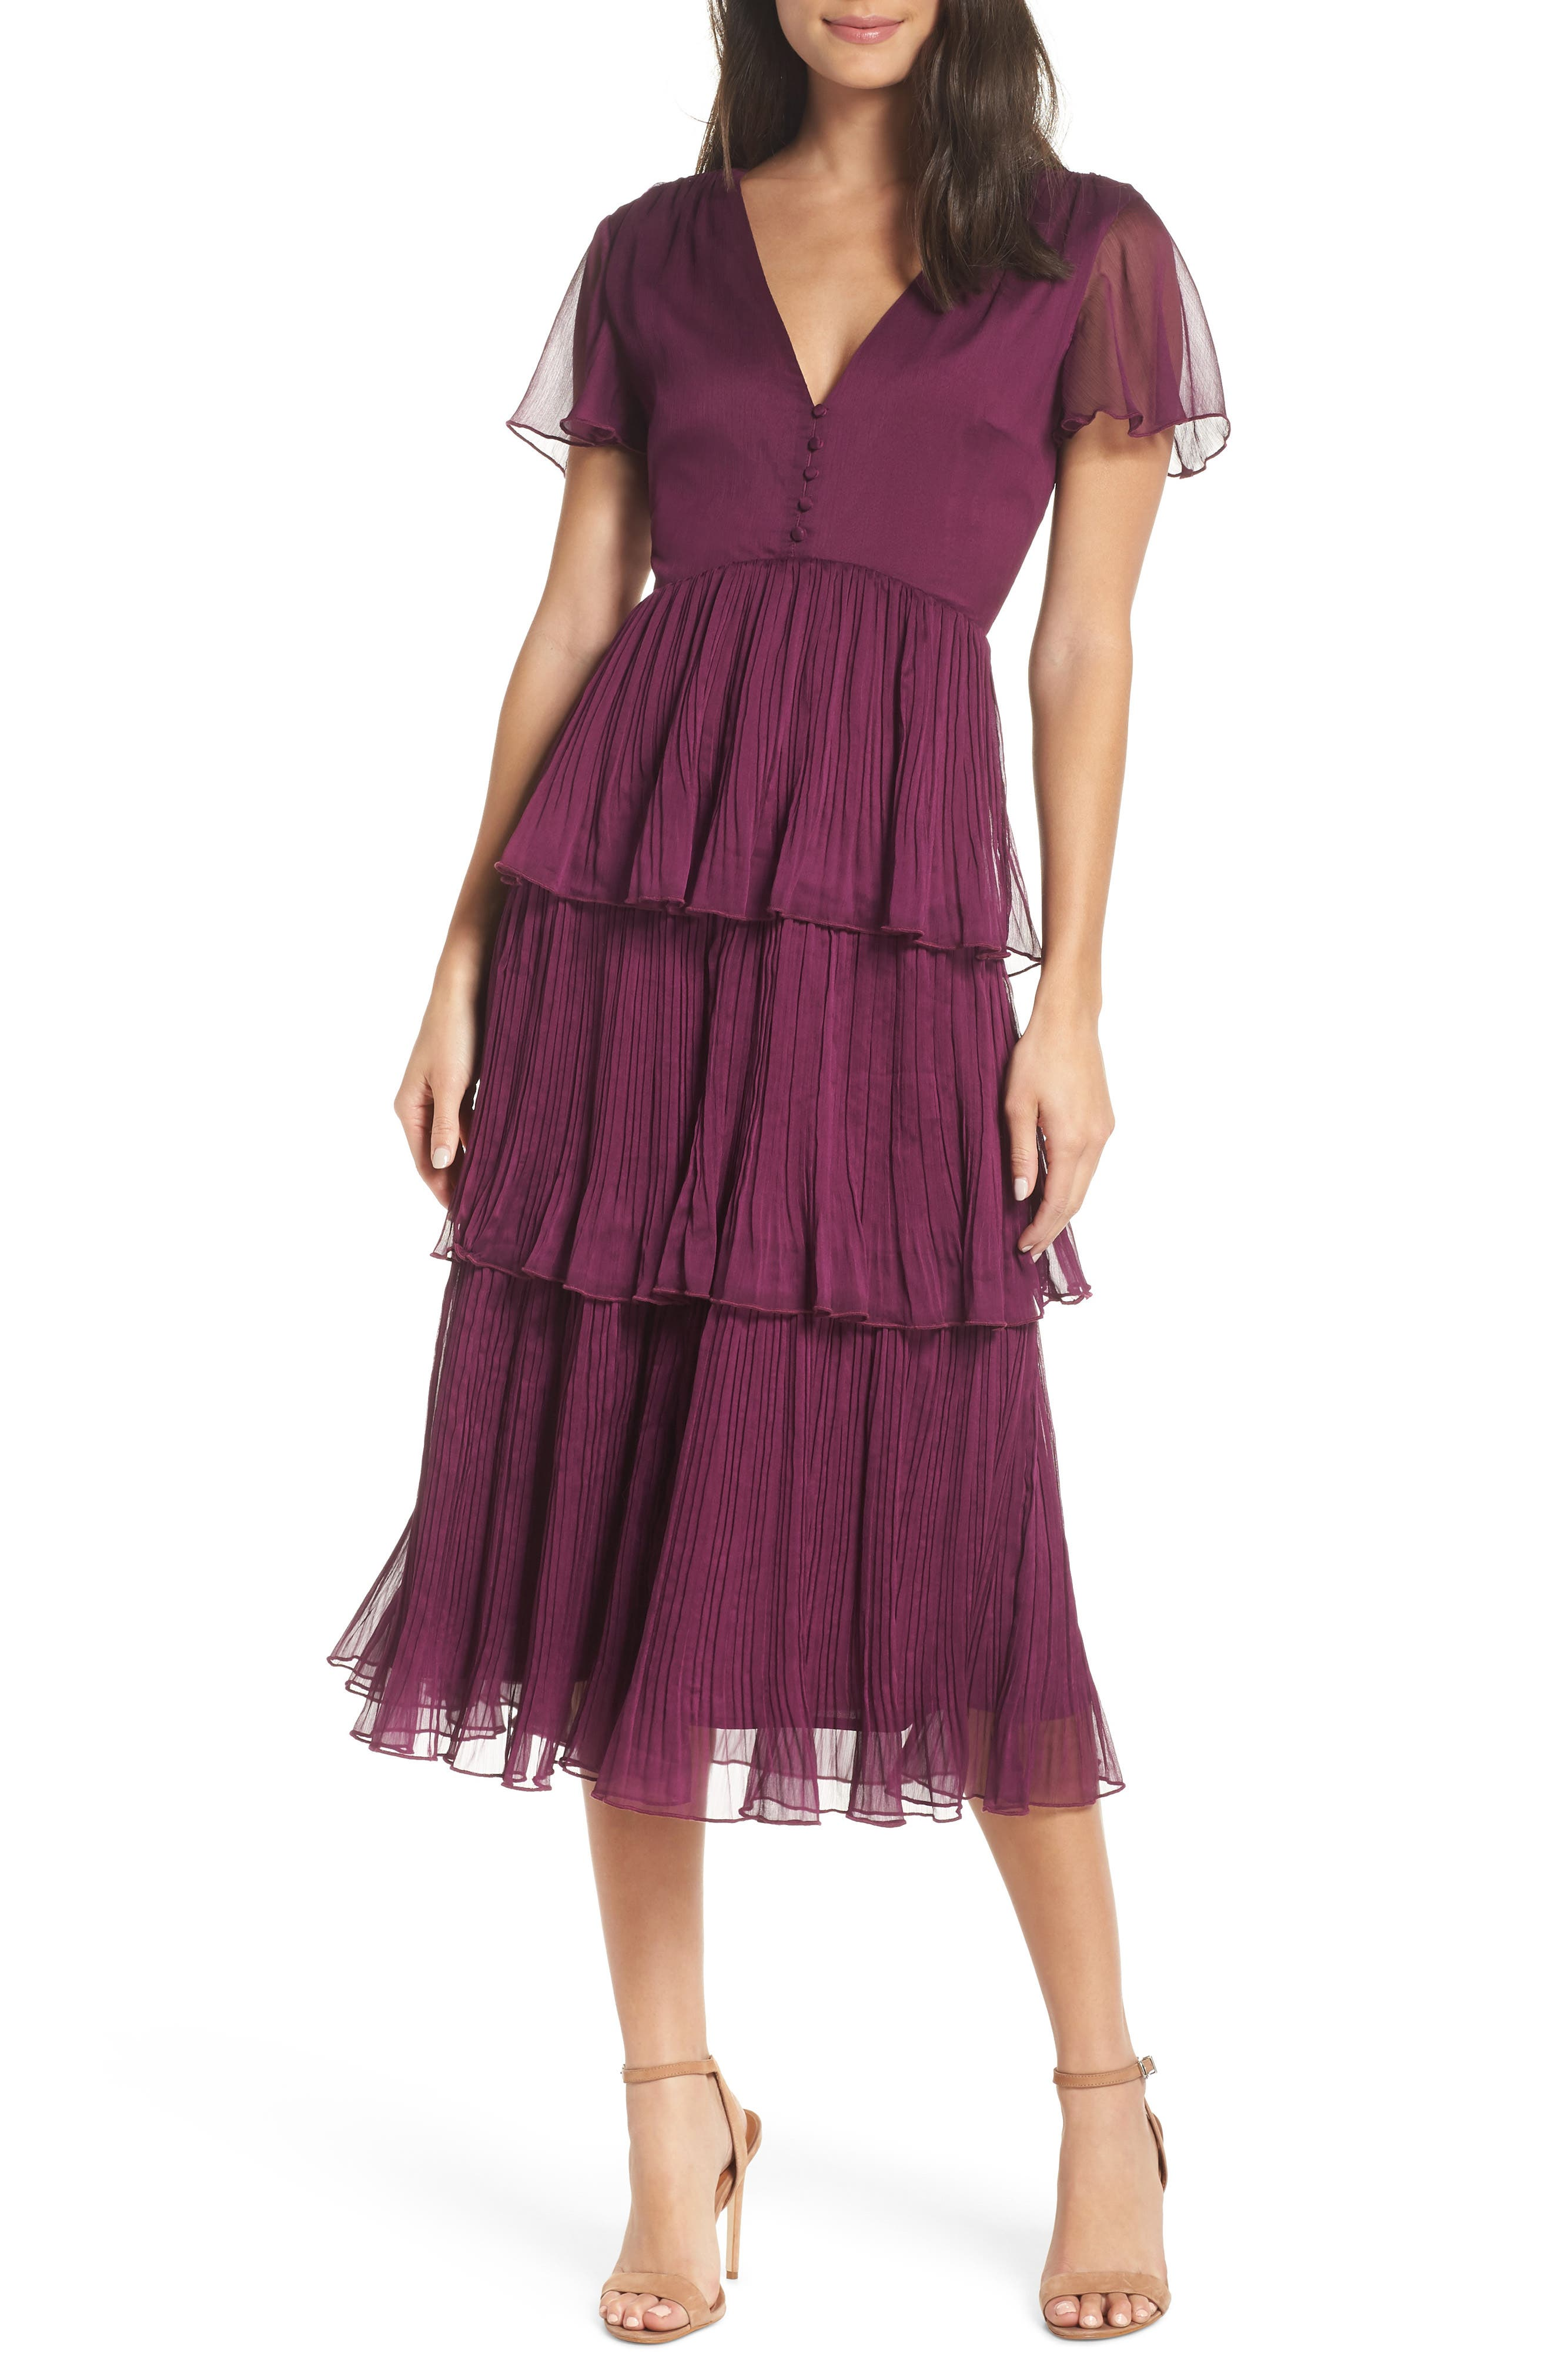 Tiered Skirt Midi Dress,                         Main,                         color, PURPLE DARK